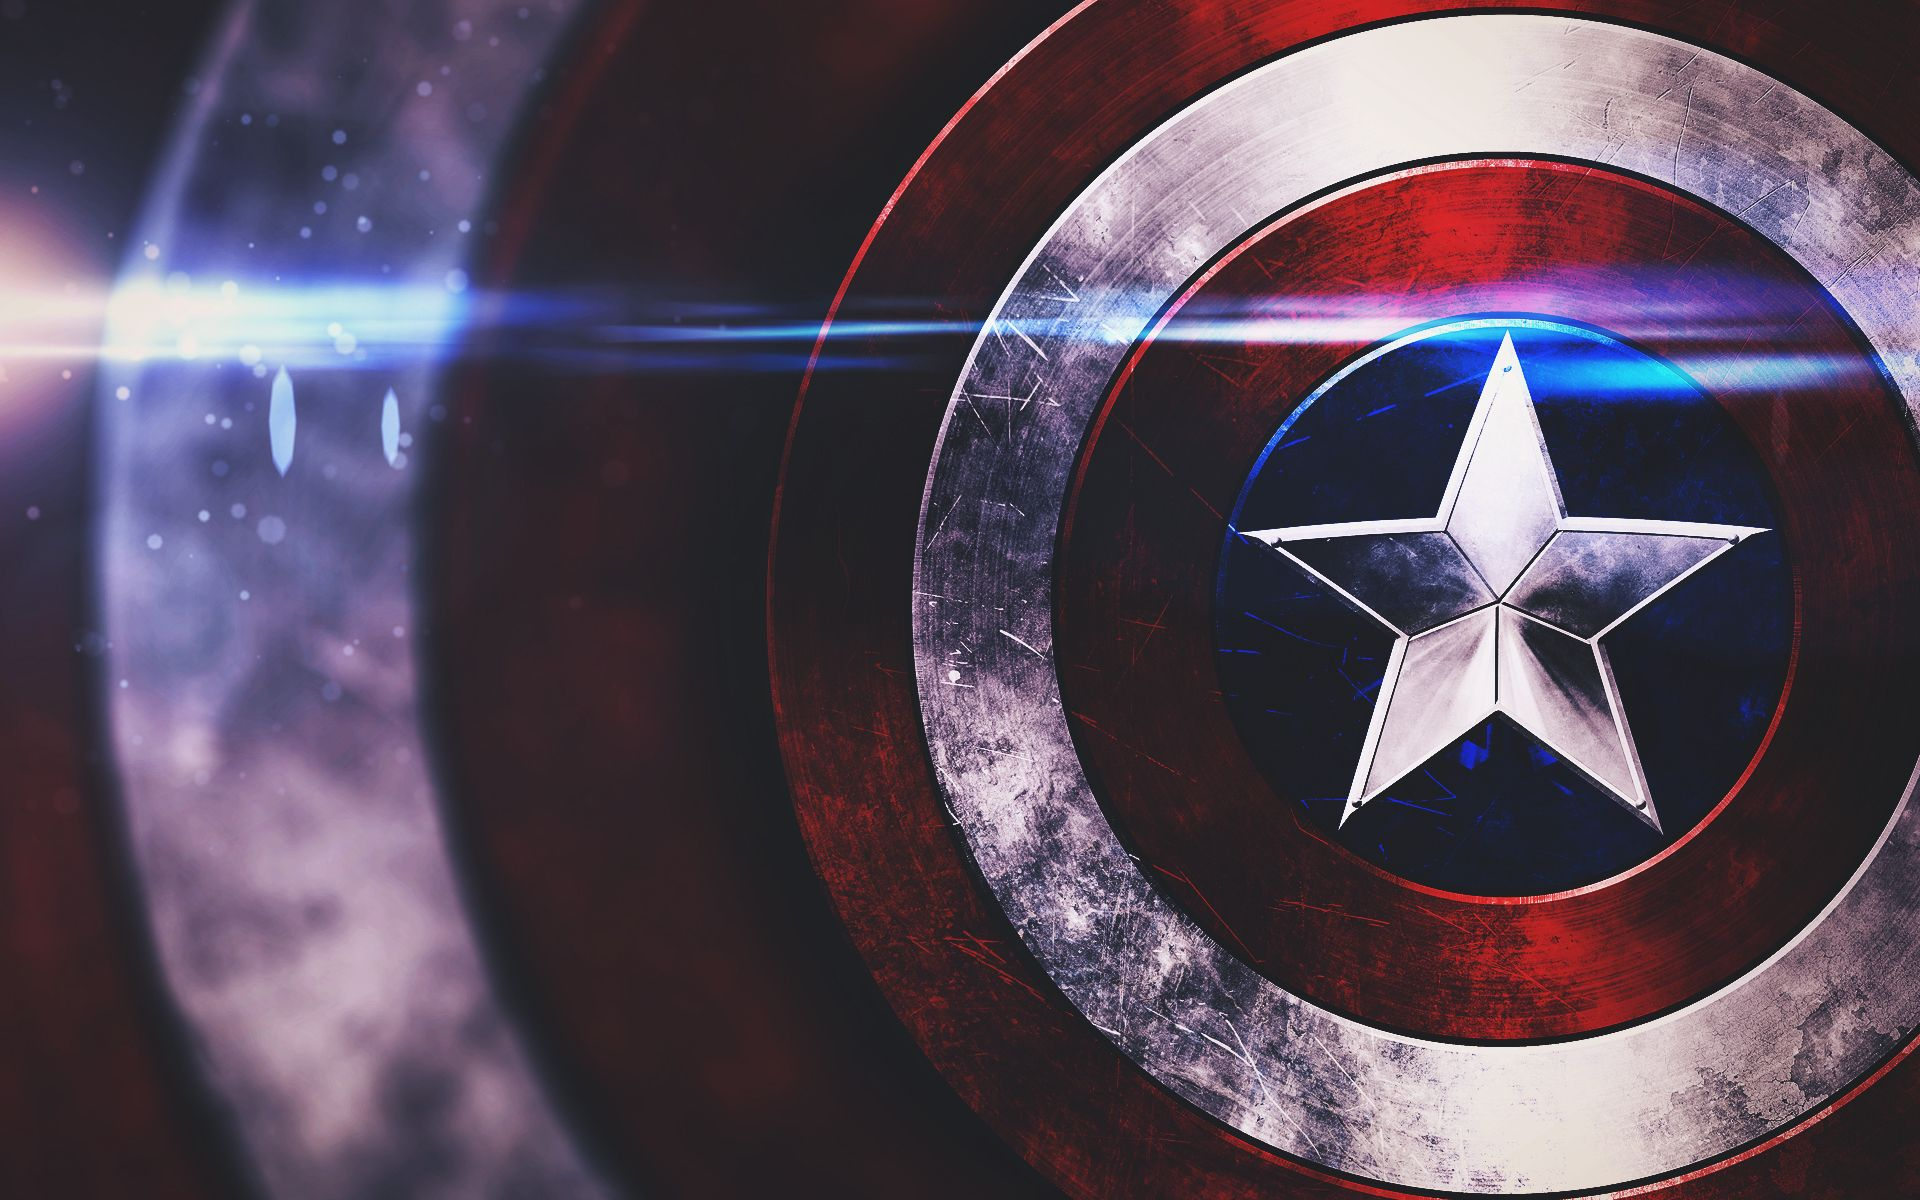 52040c2939398fe38e4404b71e559919 Jpg 1920 1200 Captain America Wallpaper Captain America Shield Wallpaper Avengers Wallpaper